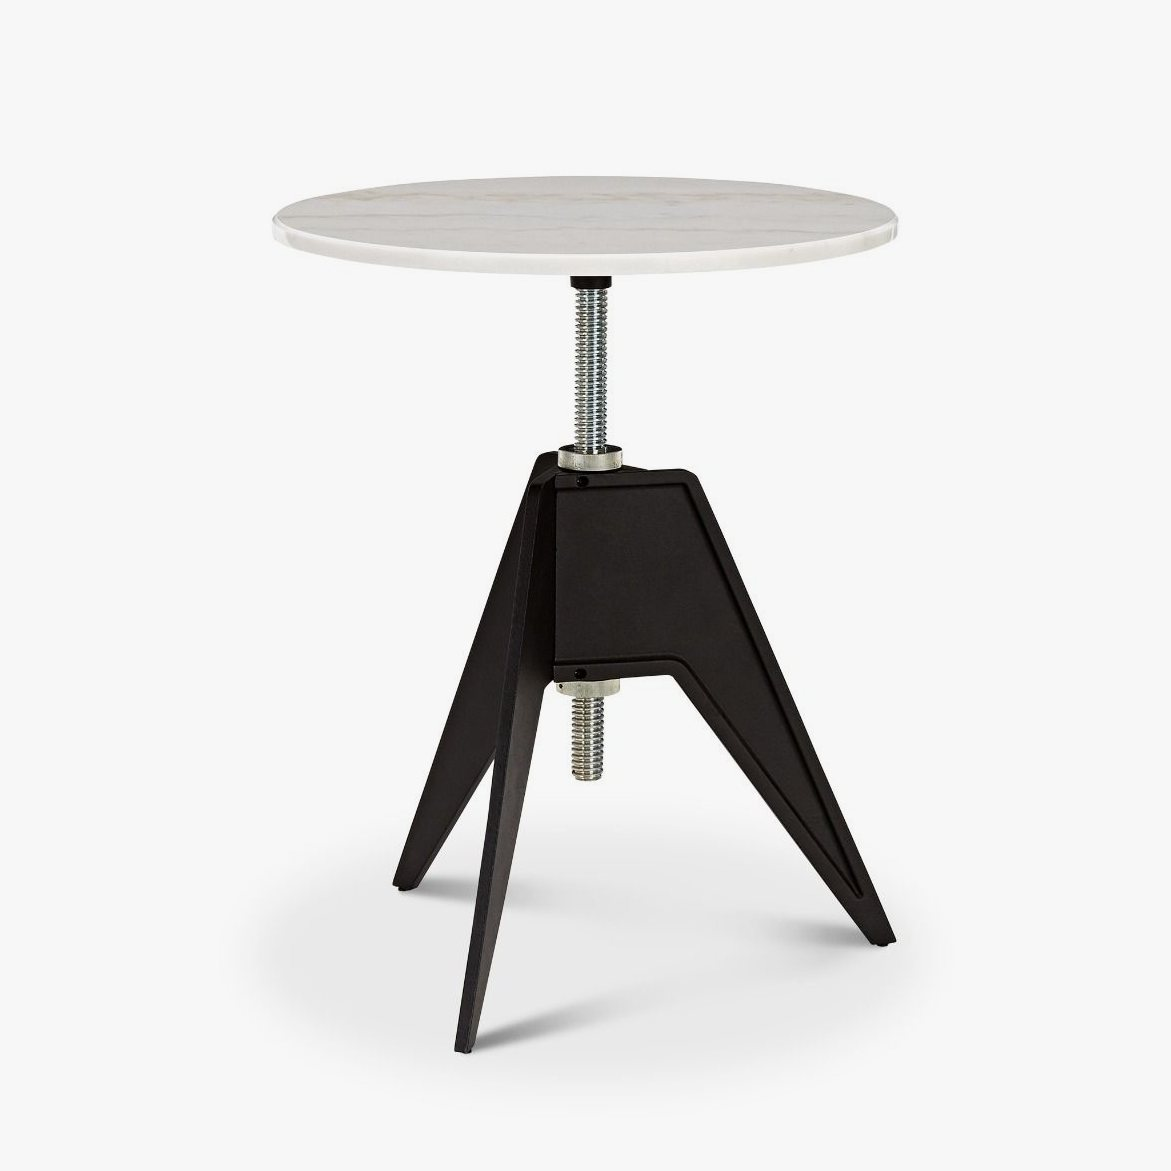 Screw Table with 60 cm top.